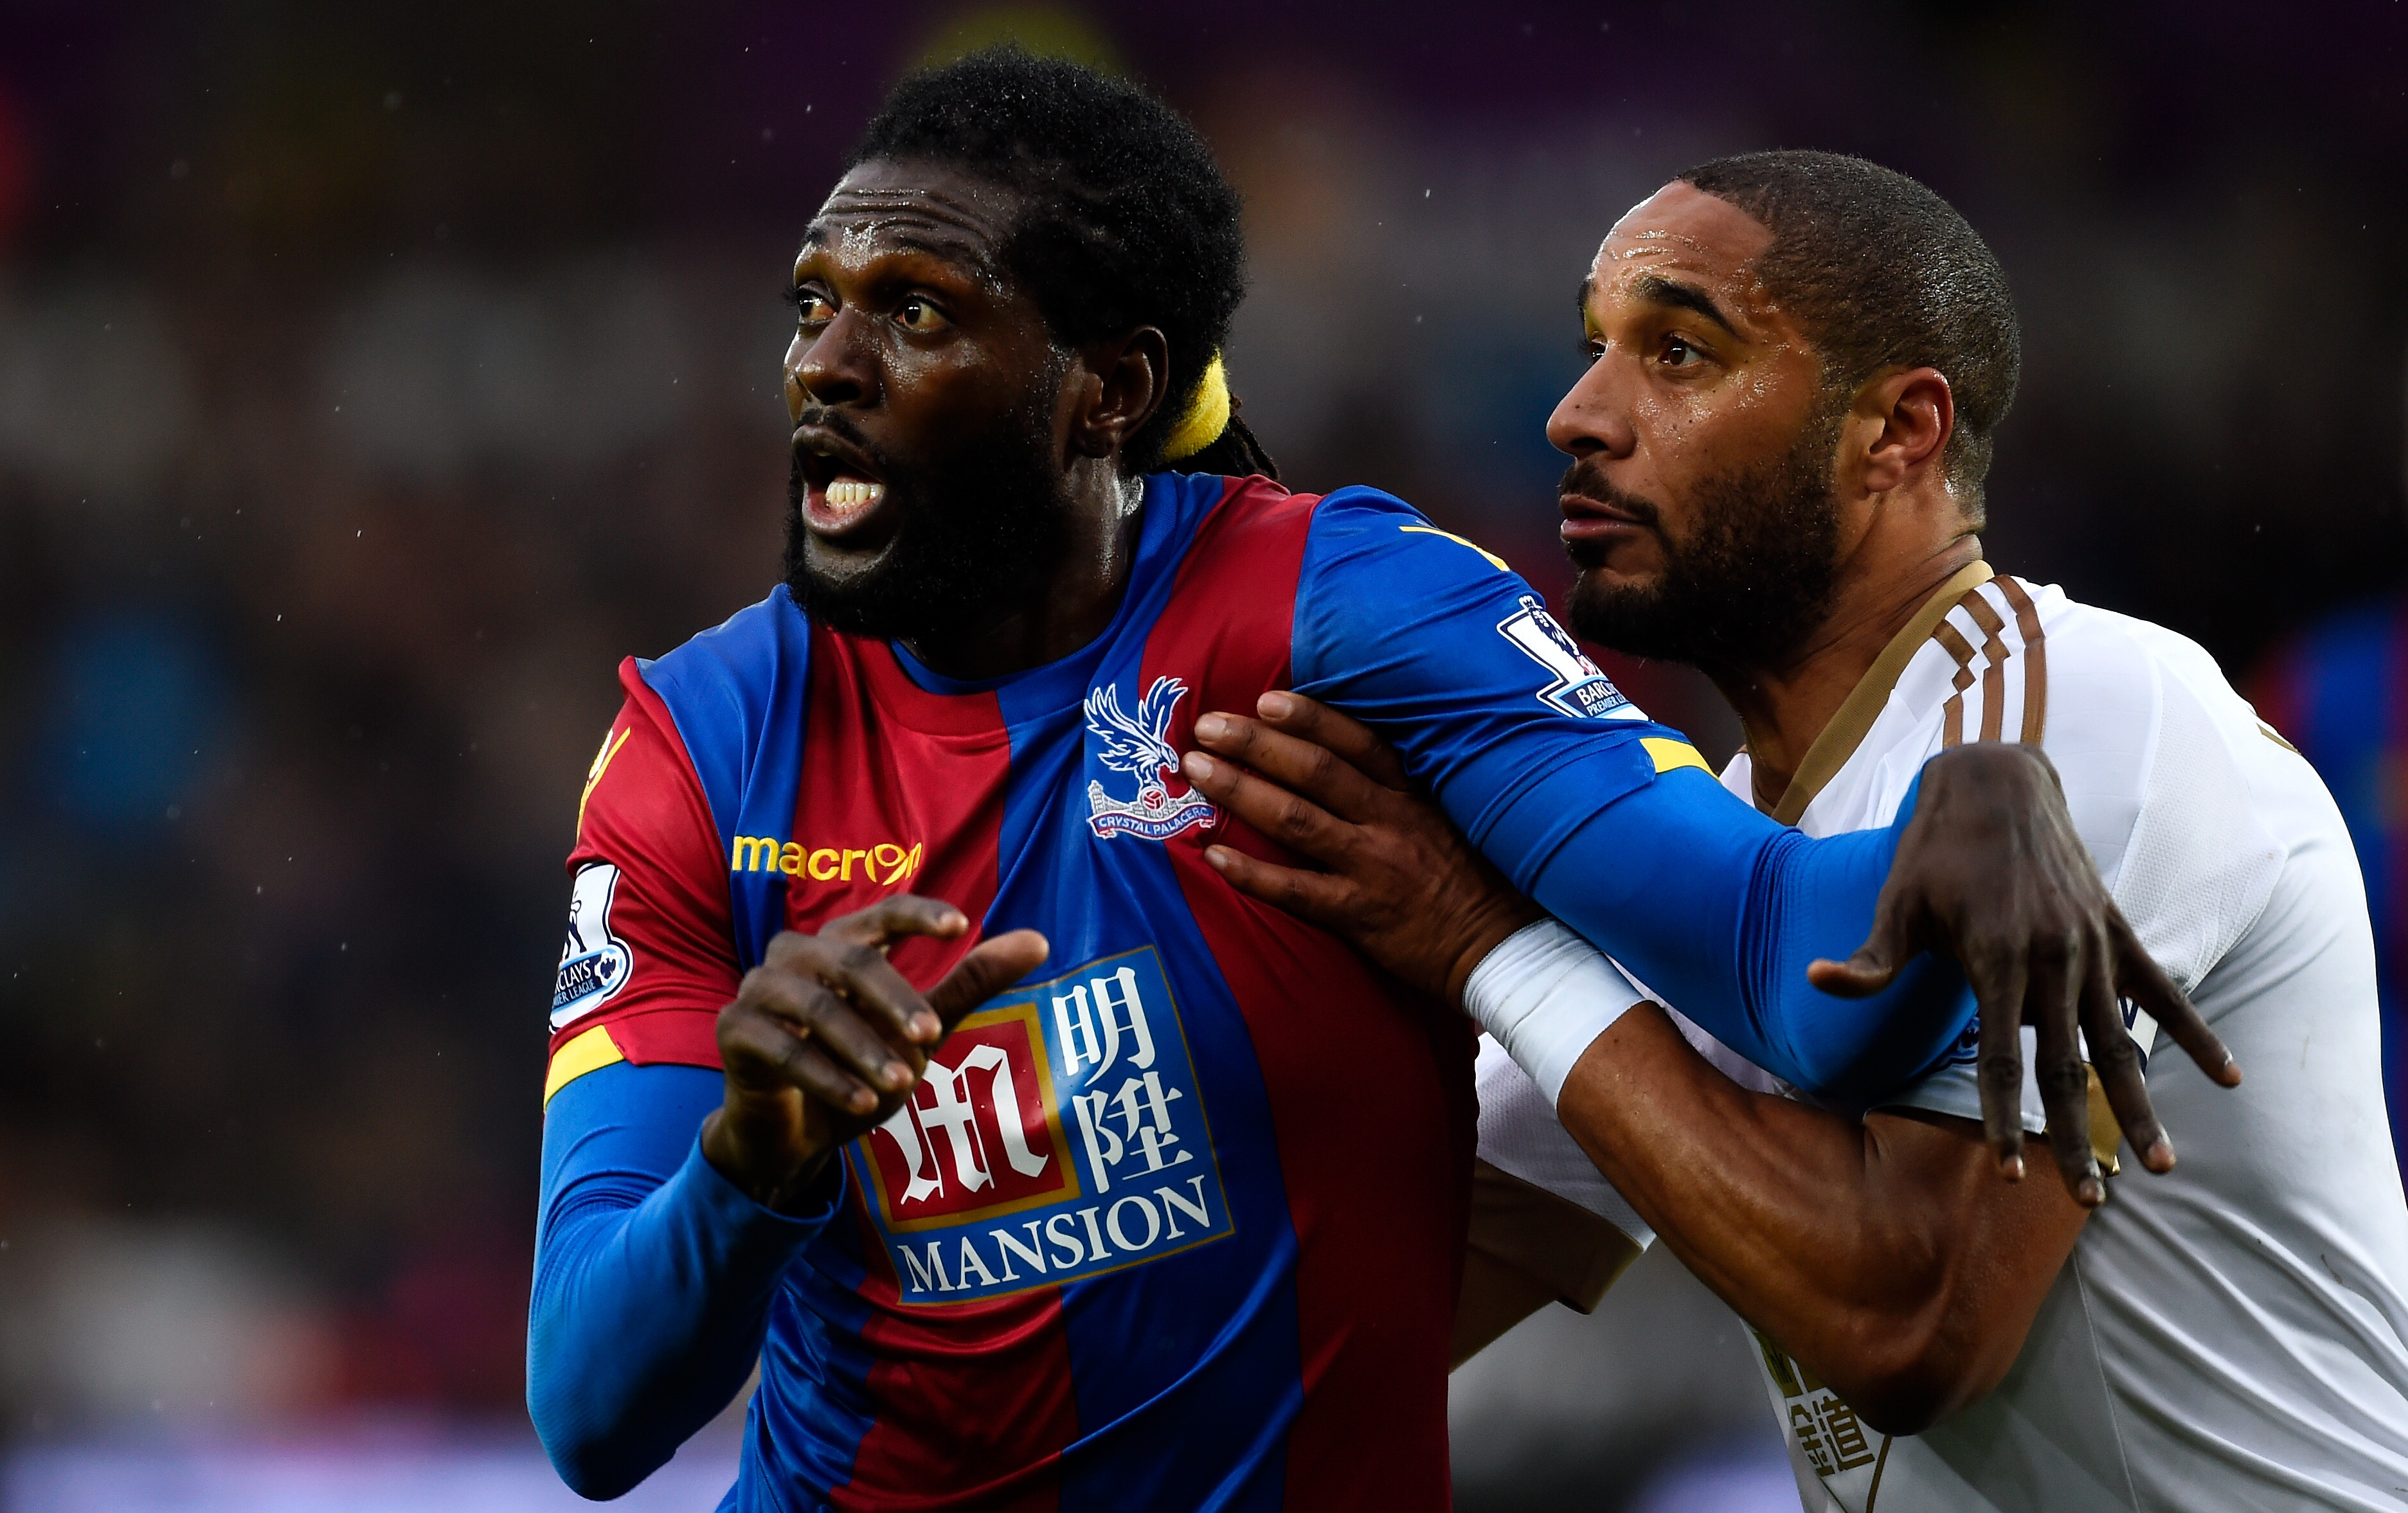 'He would sit in the gym eating a muffin' - Hangeland questions attitude of 'lazy' Adebayor